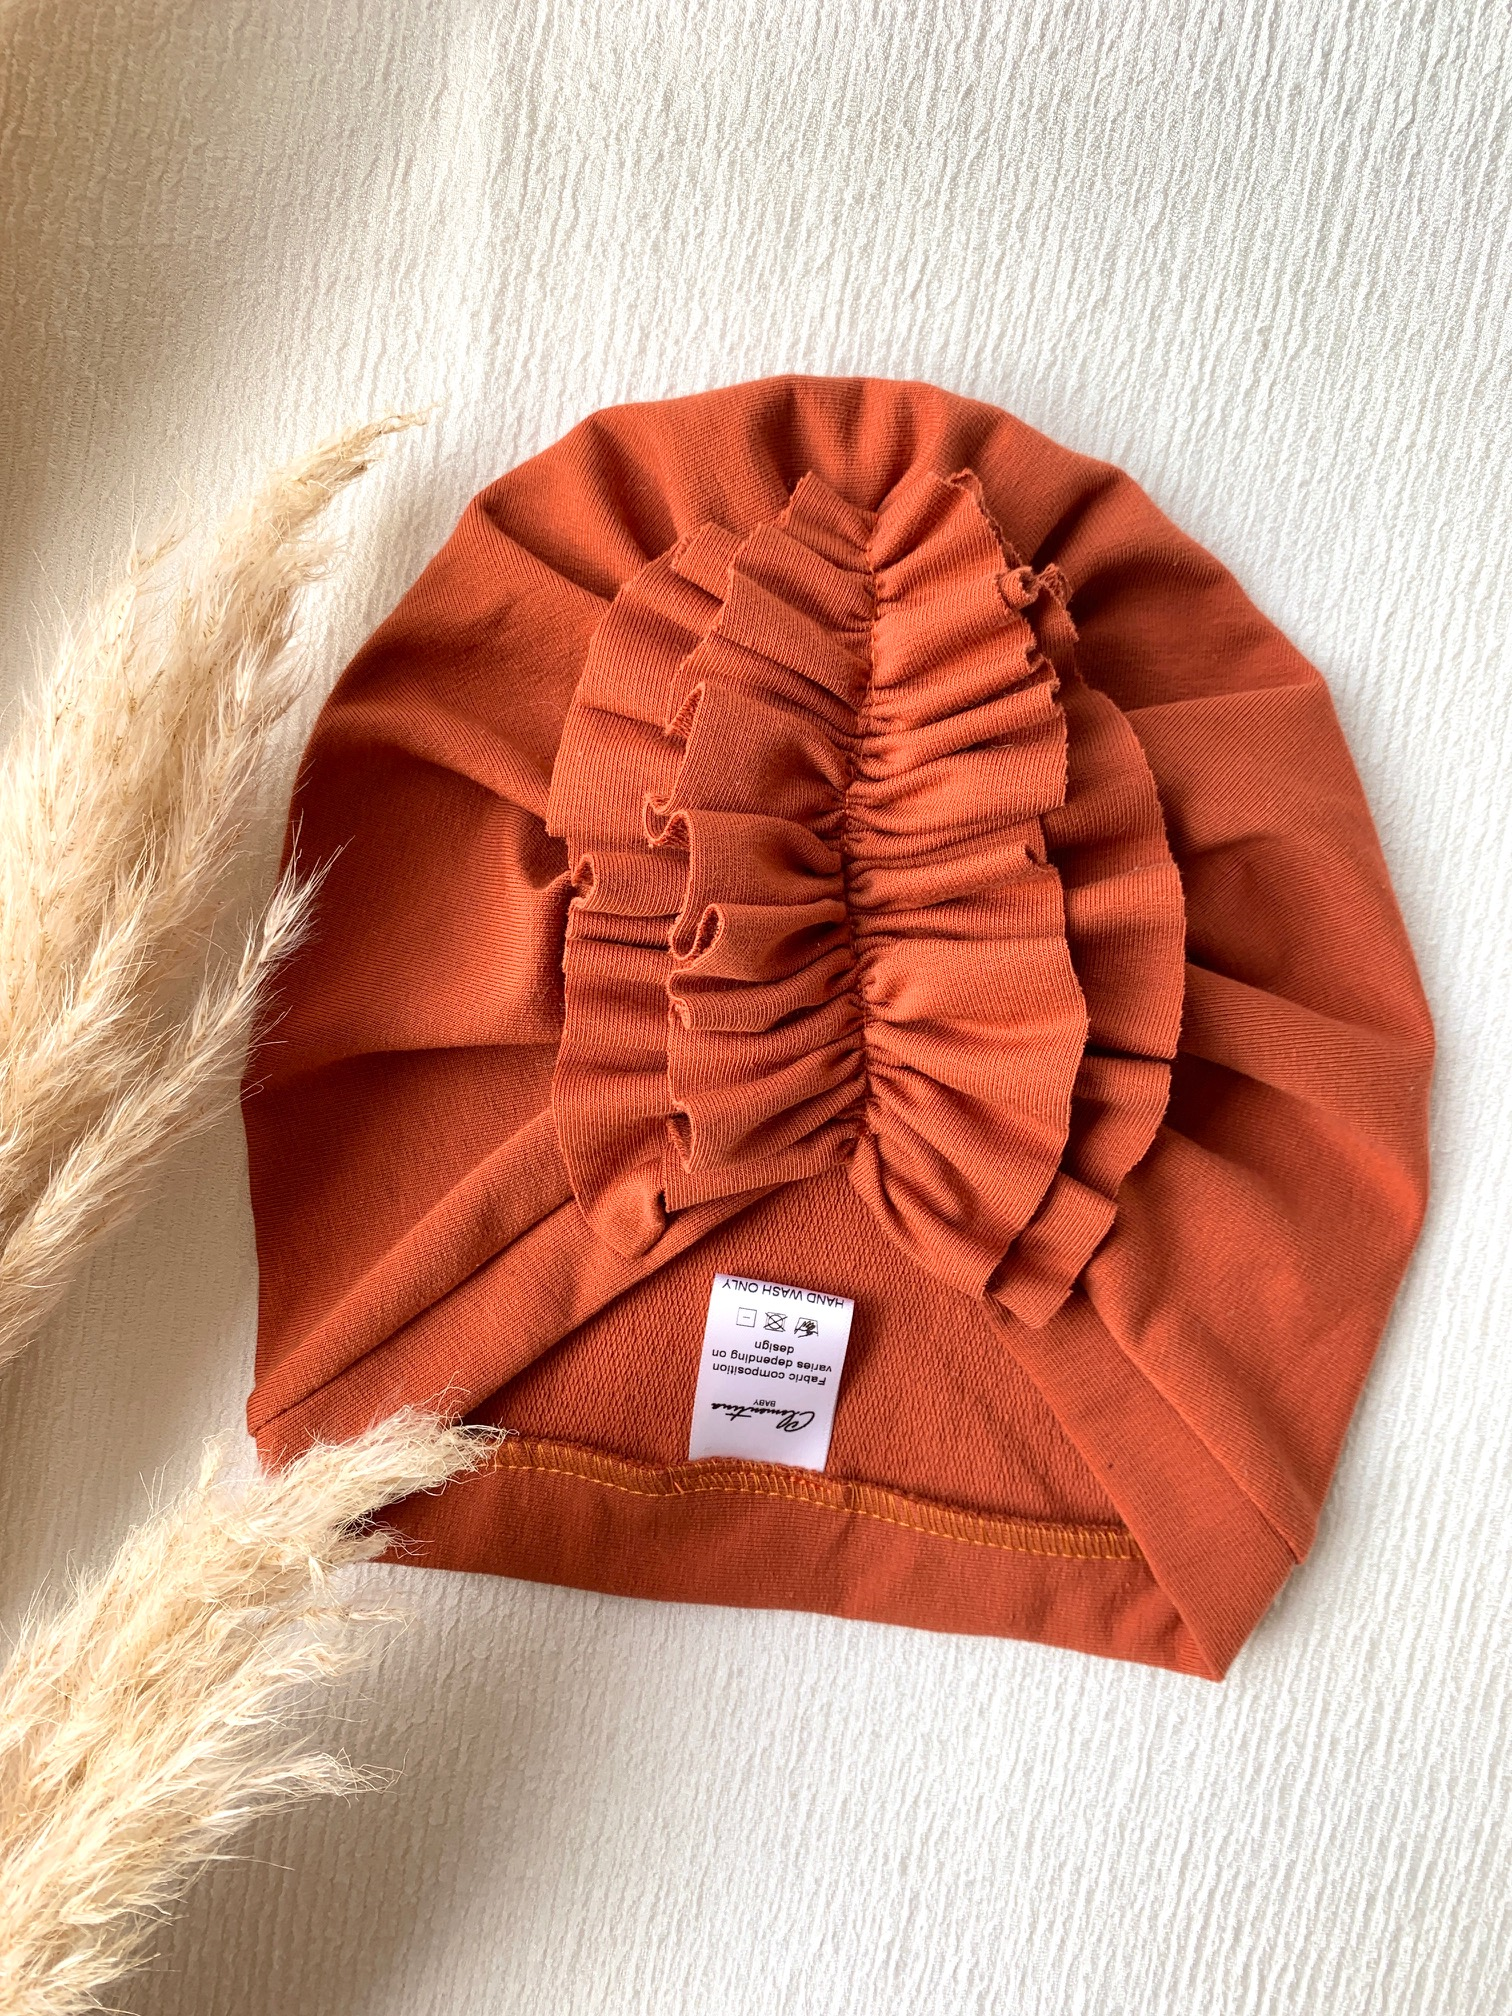 Clementina Baby - Burnt Orange Ruffle Turban